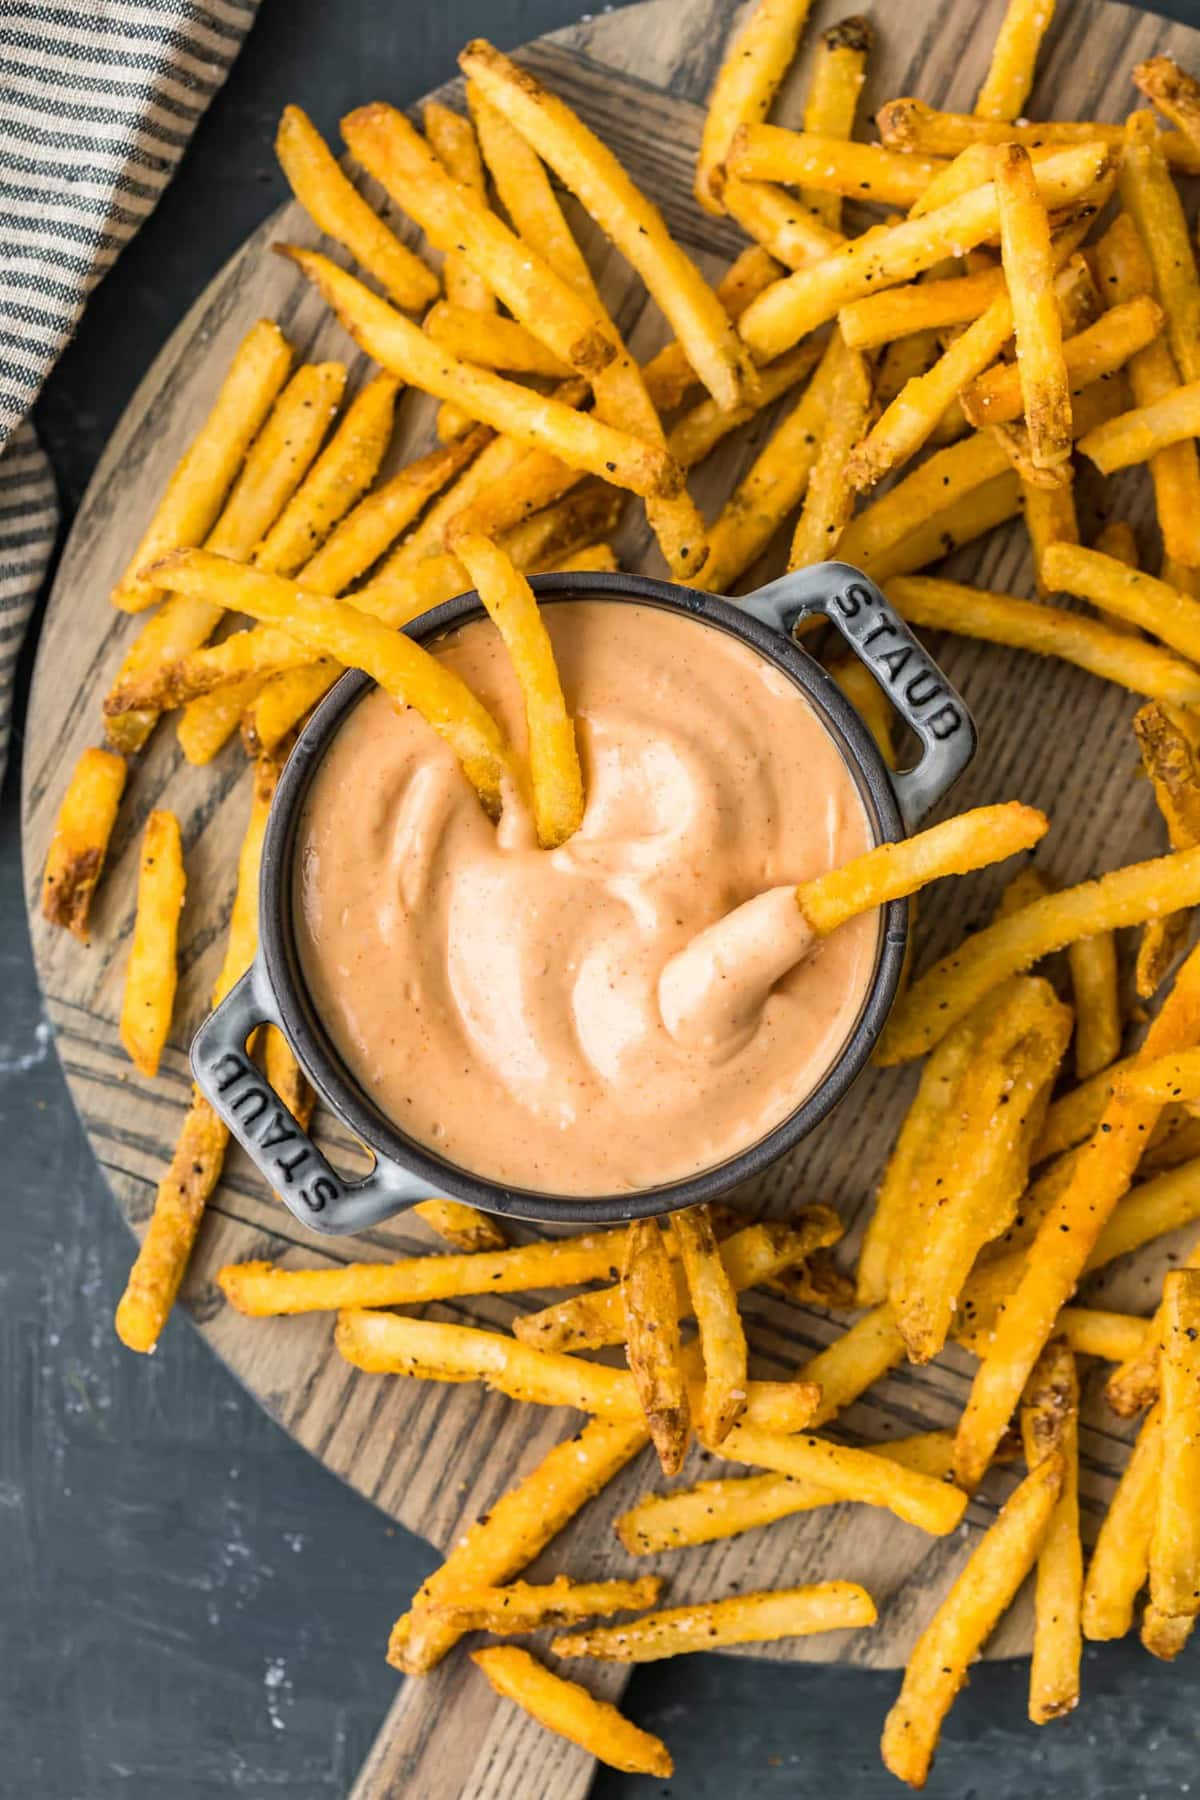 Fries dipped in fry sauce